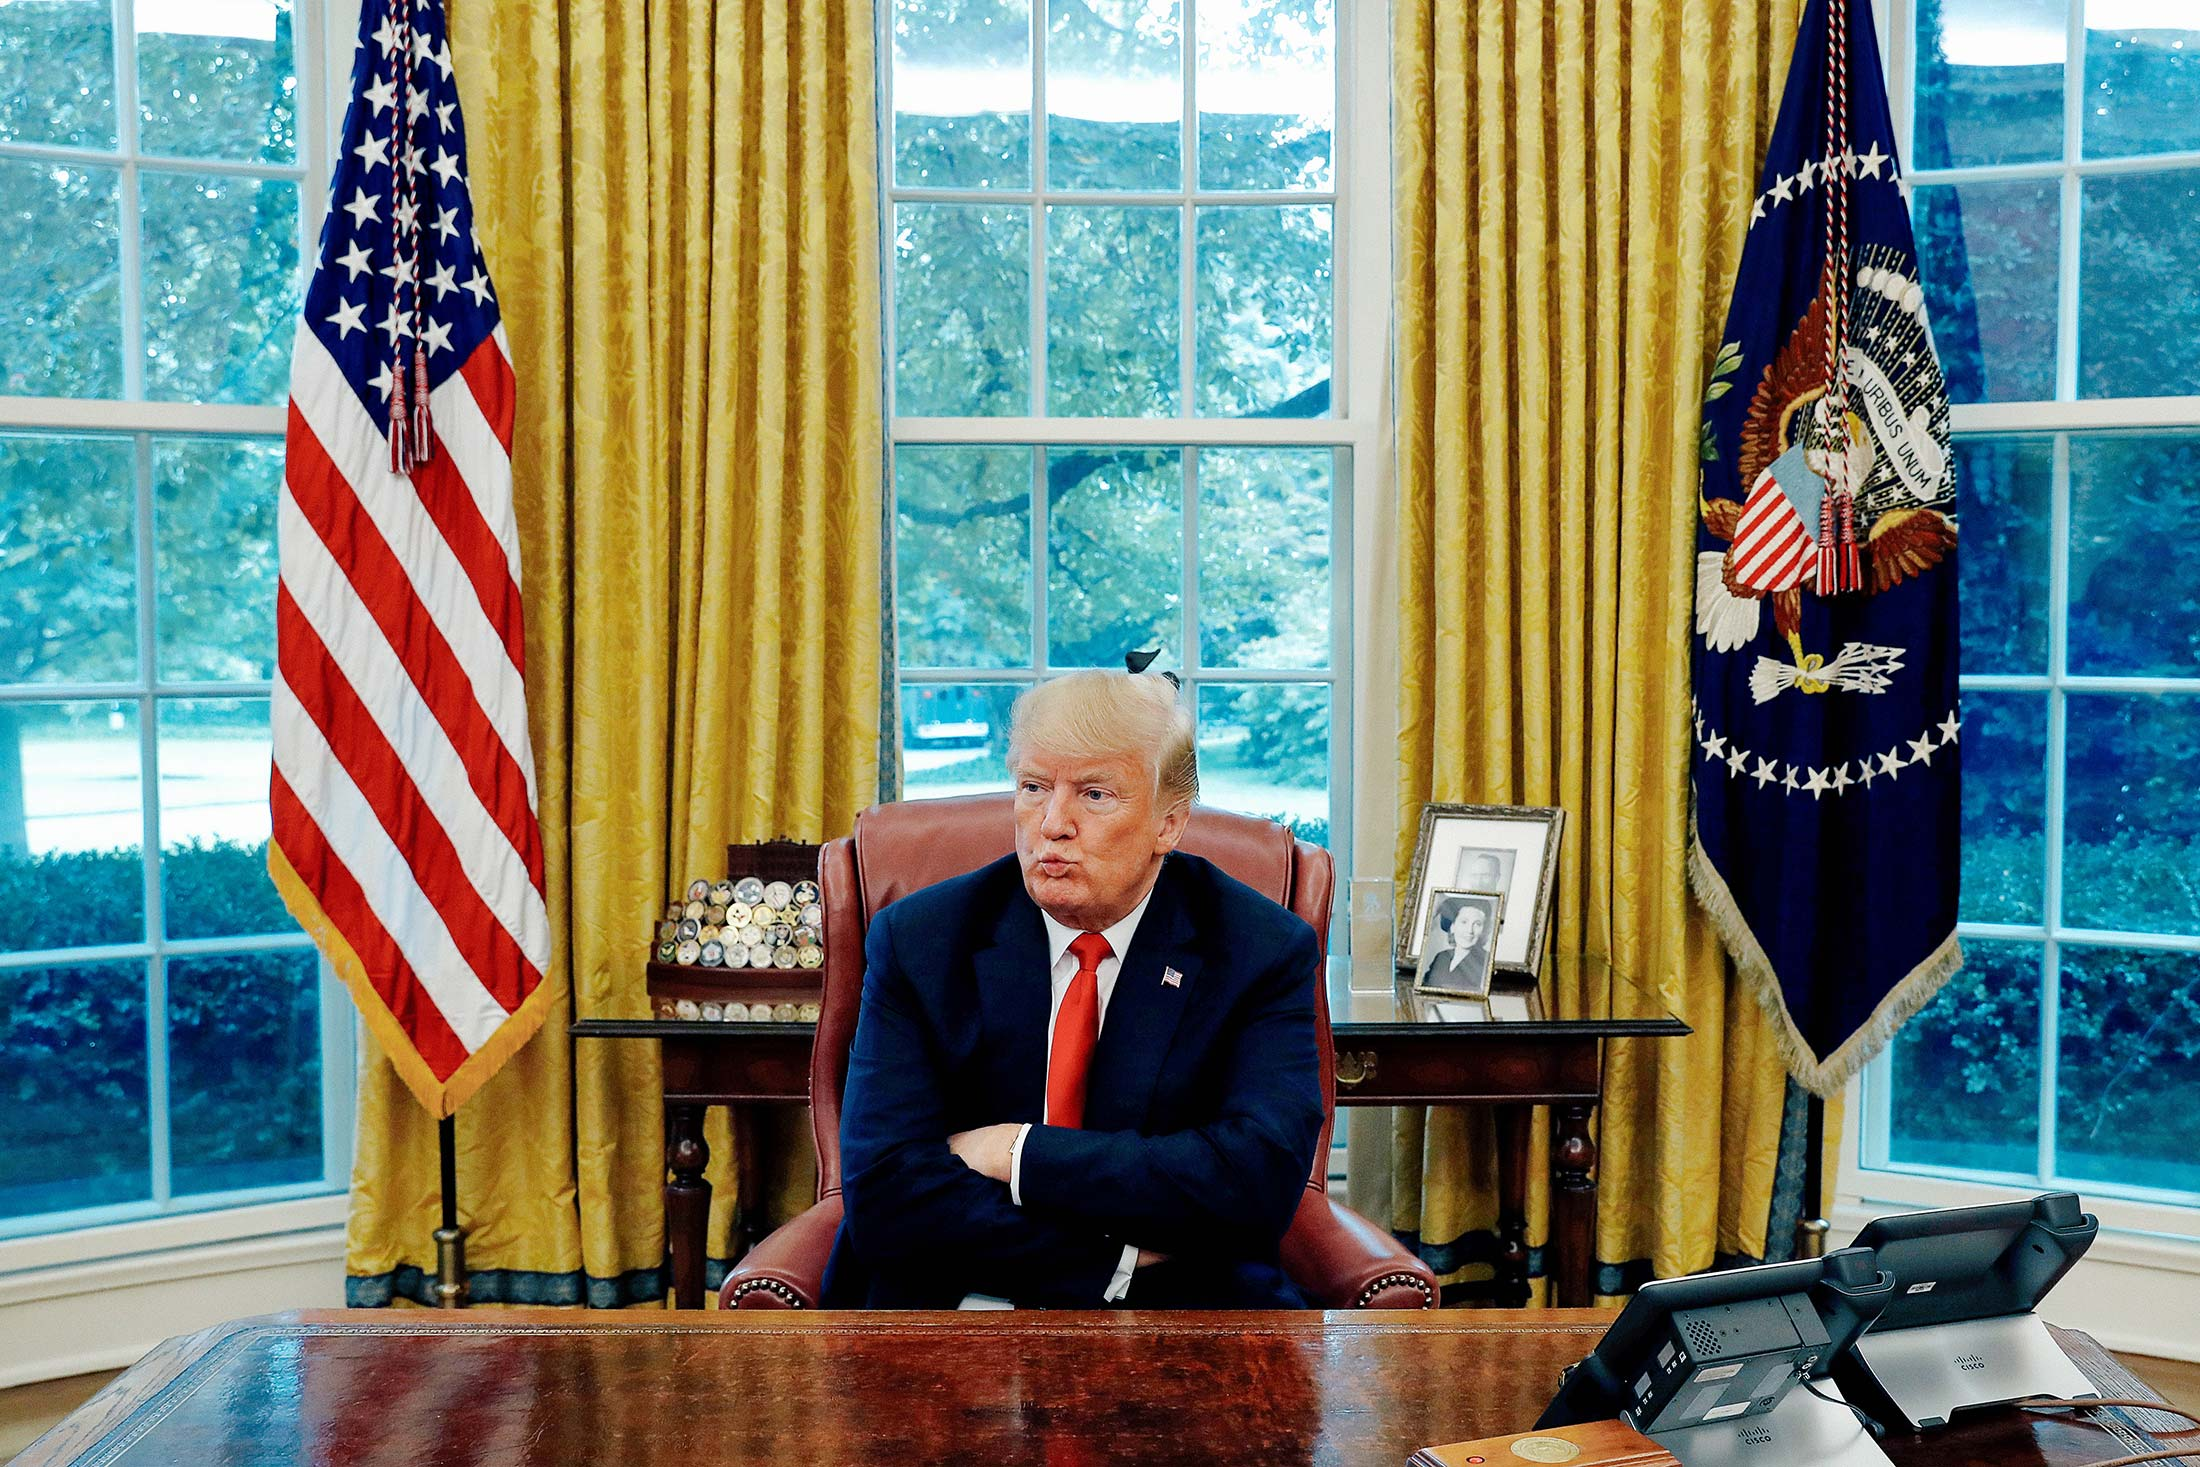 Donald Trump crosses his arms across his chest while sitting behind his desk in the Oval Office.